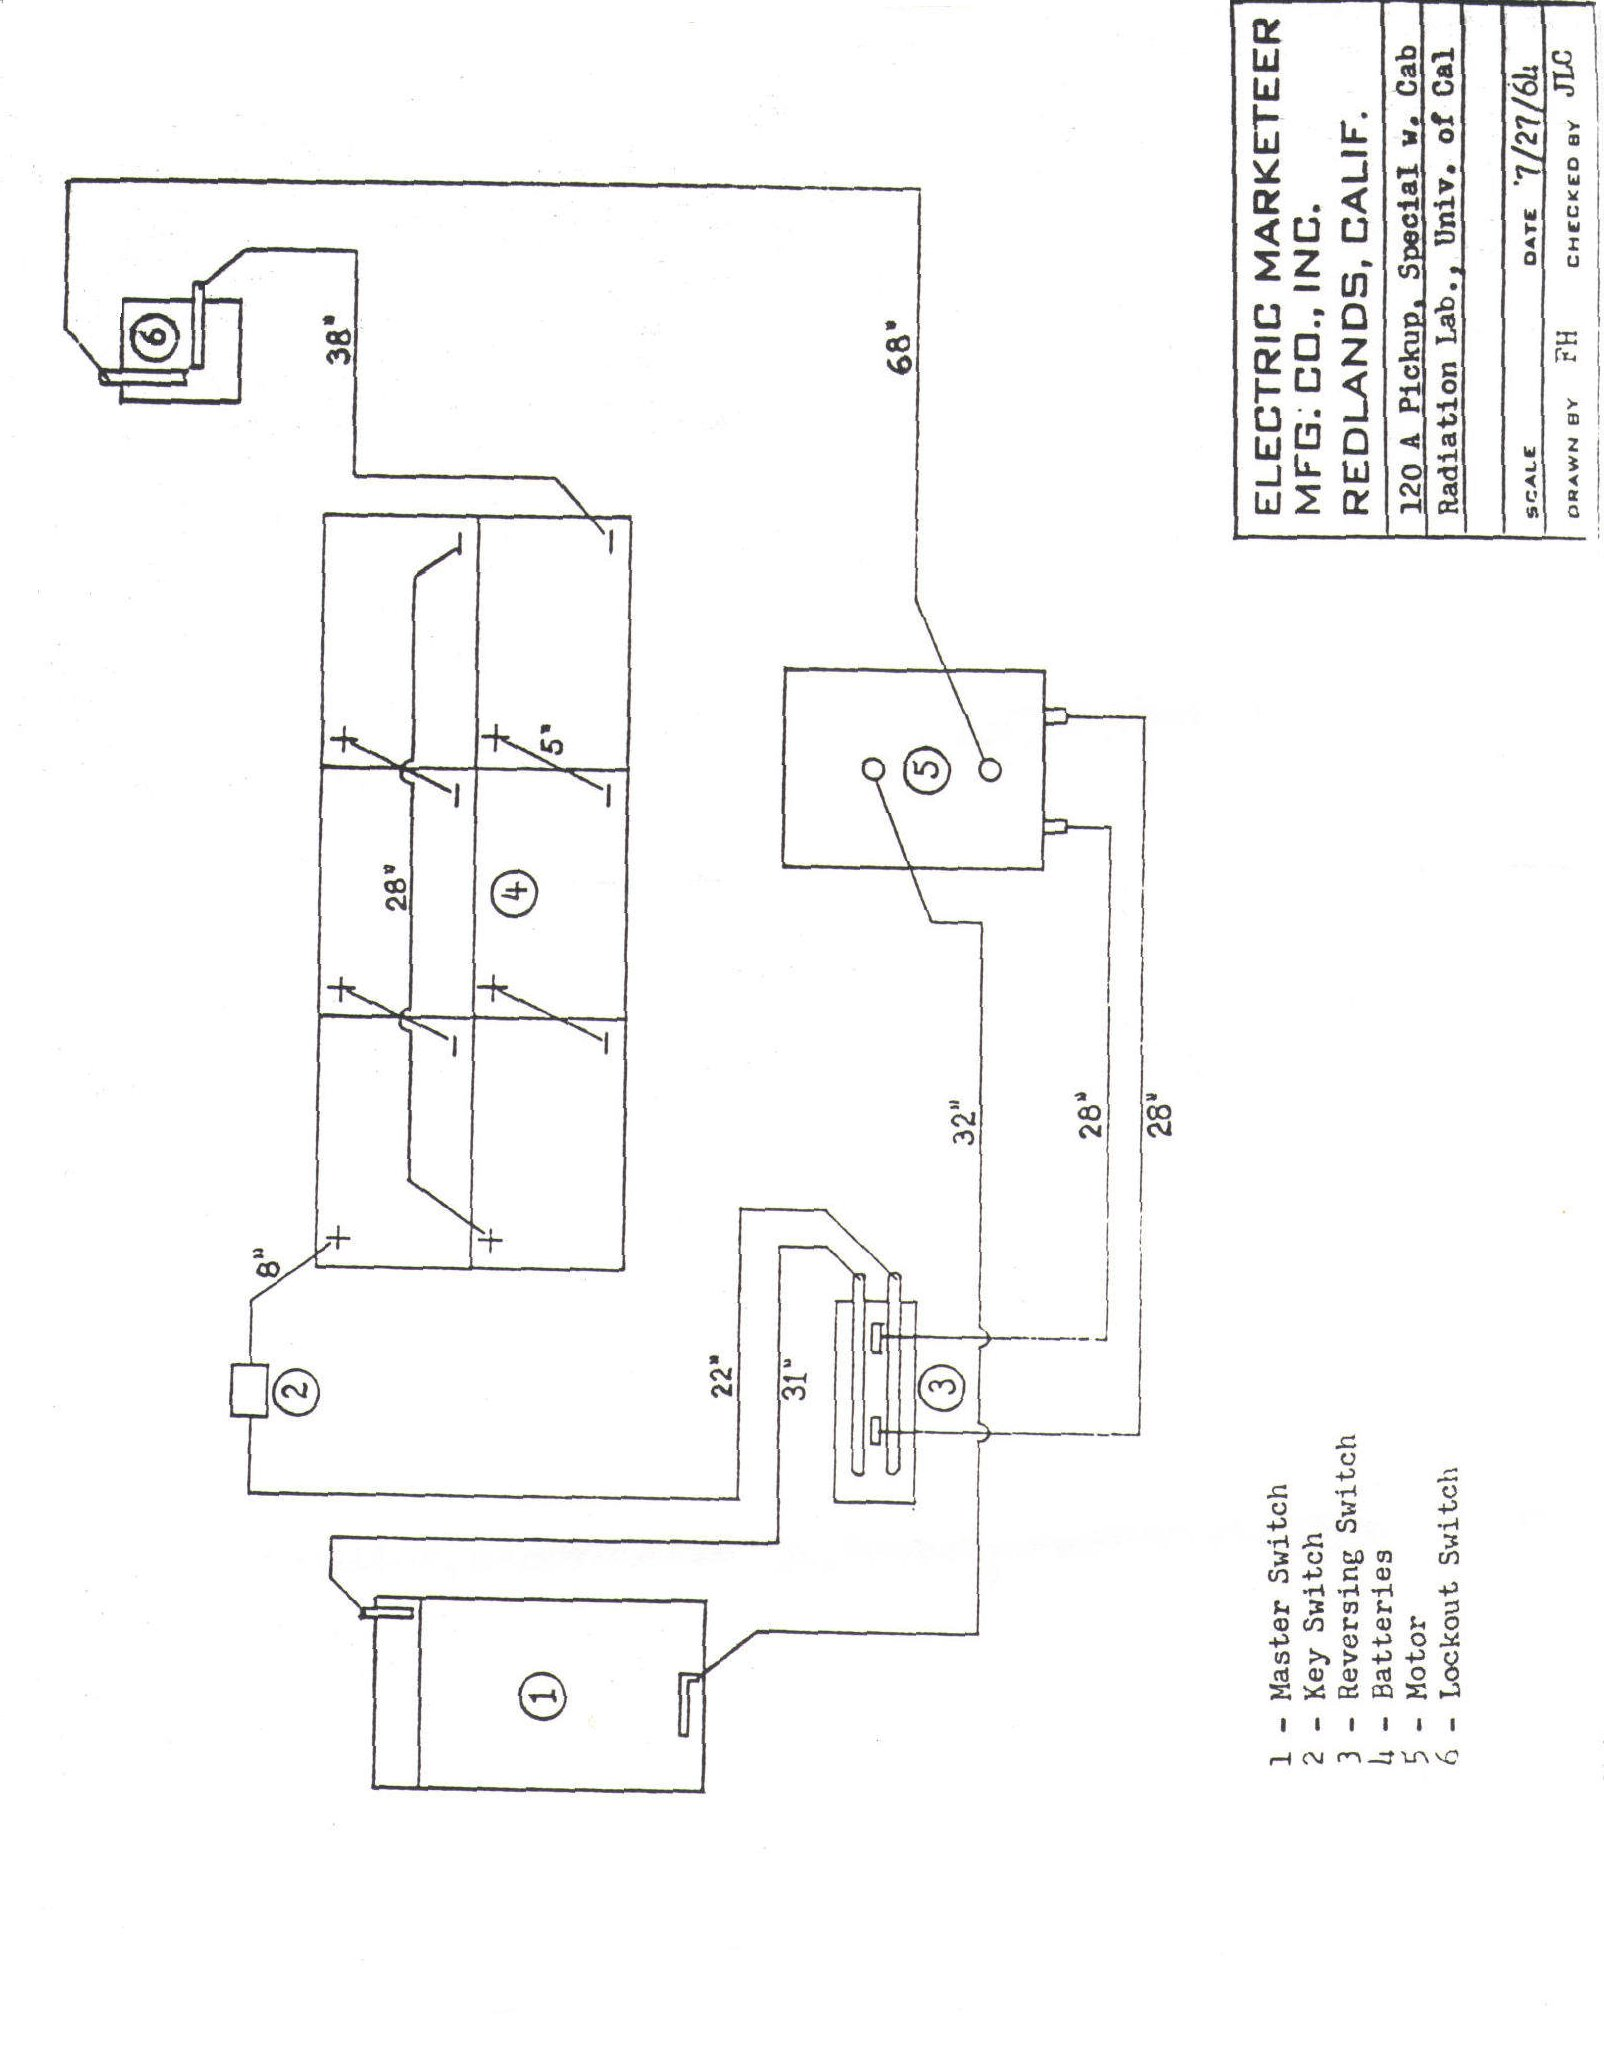 Harley Golf Cart Wiring Diagram Furthermore Melex Golf Cart Wiring